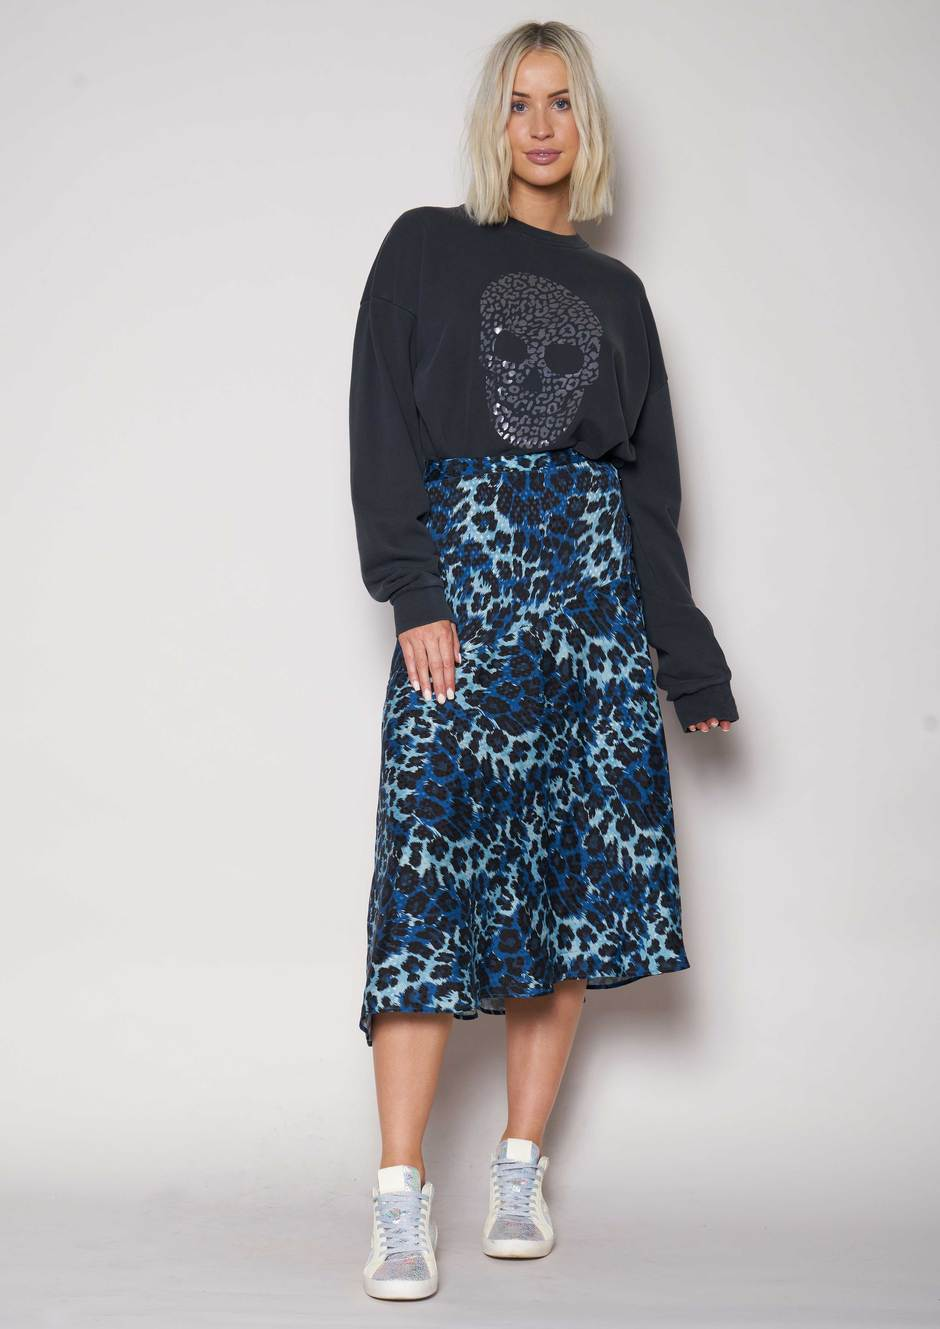 We Are The Others Drifter Skirt - Blue Leopard